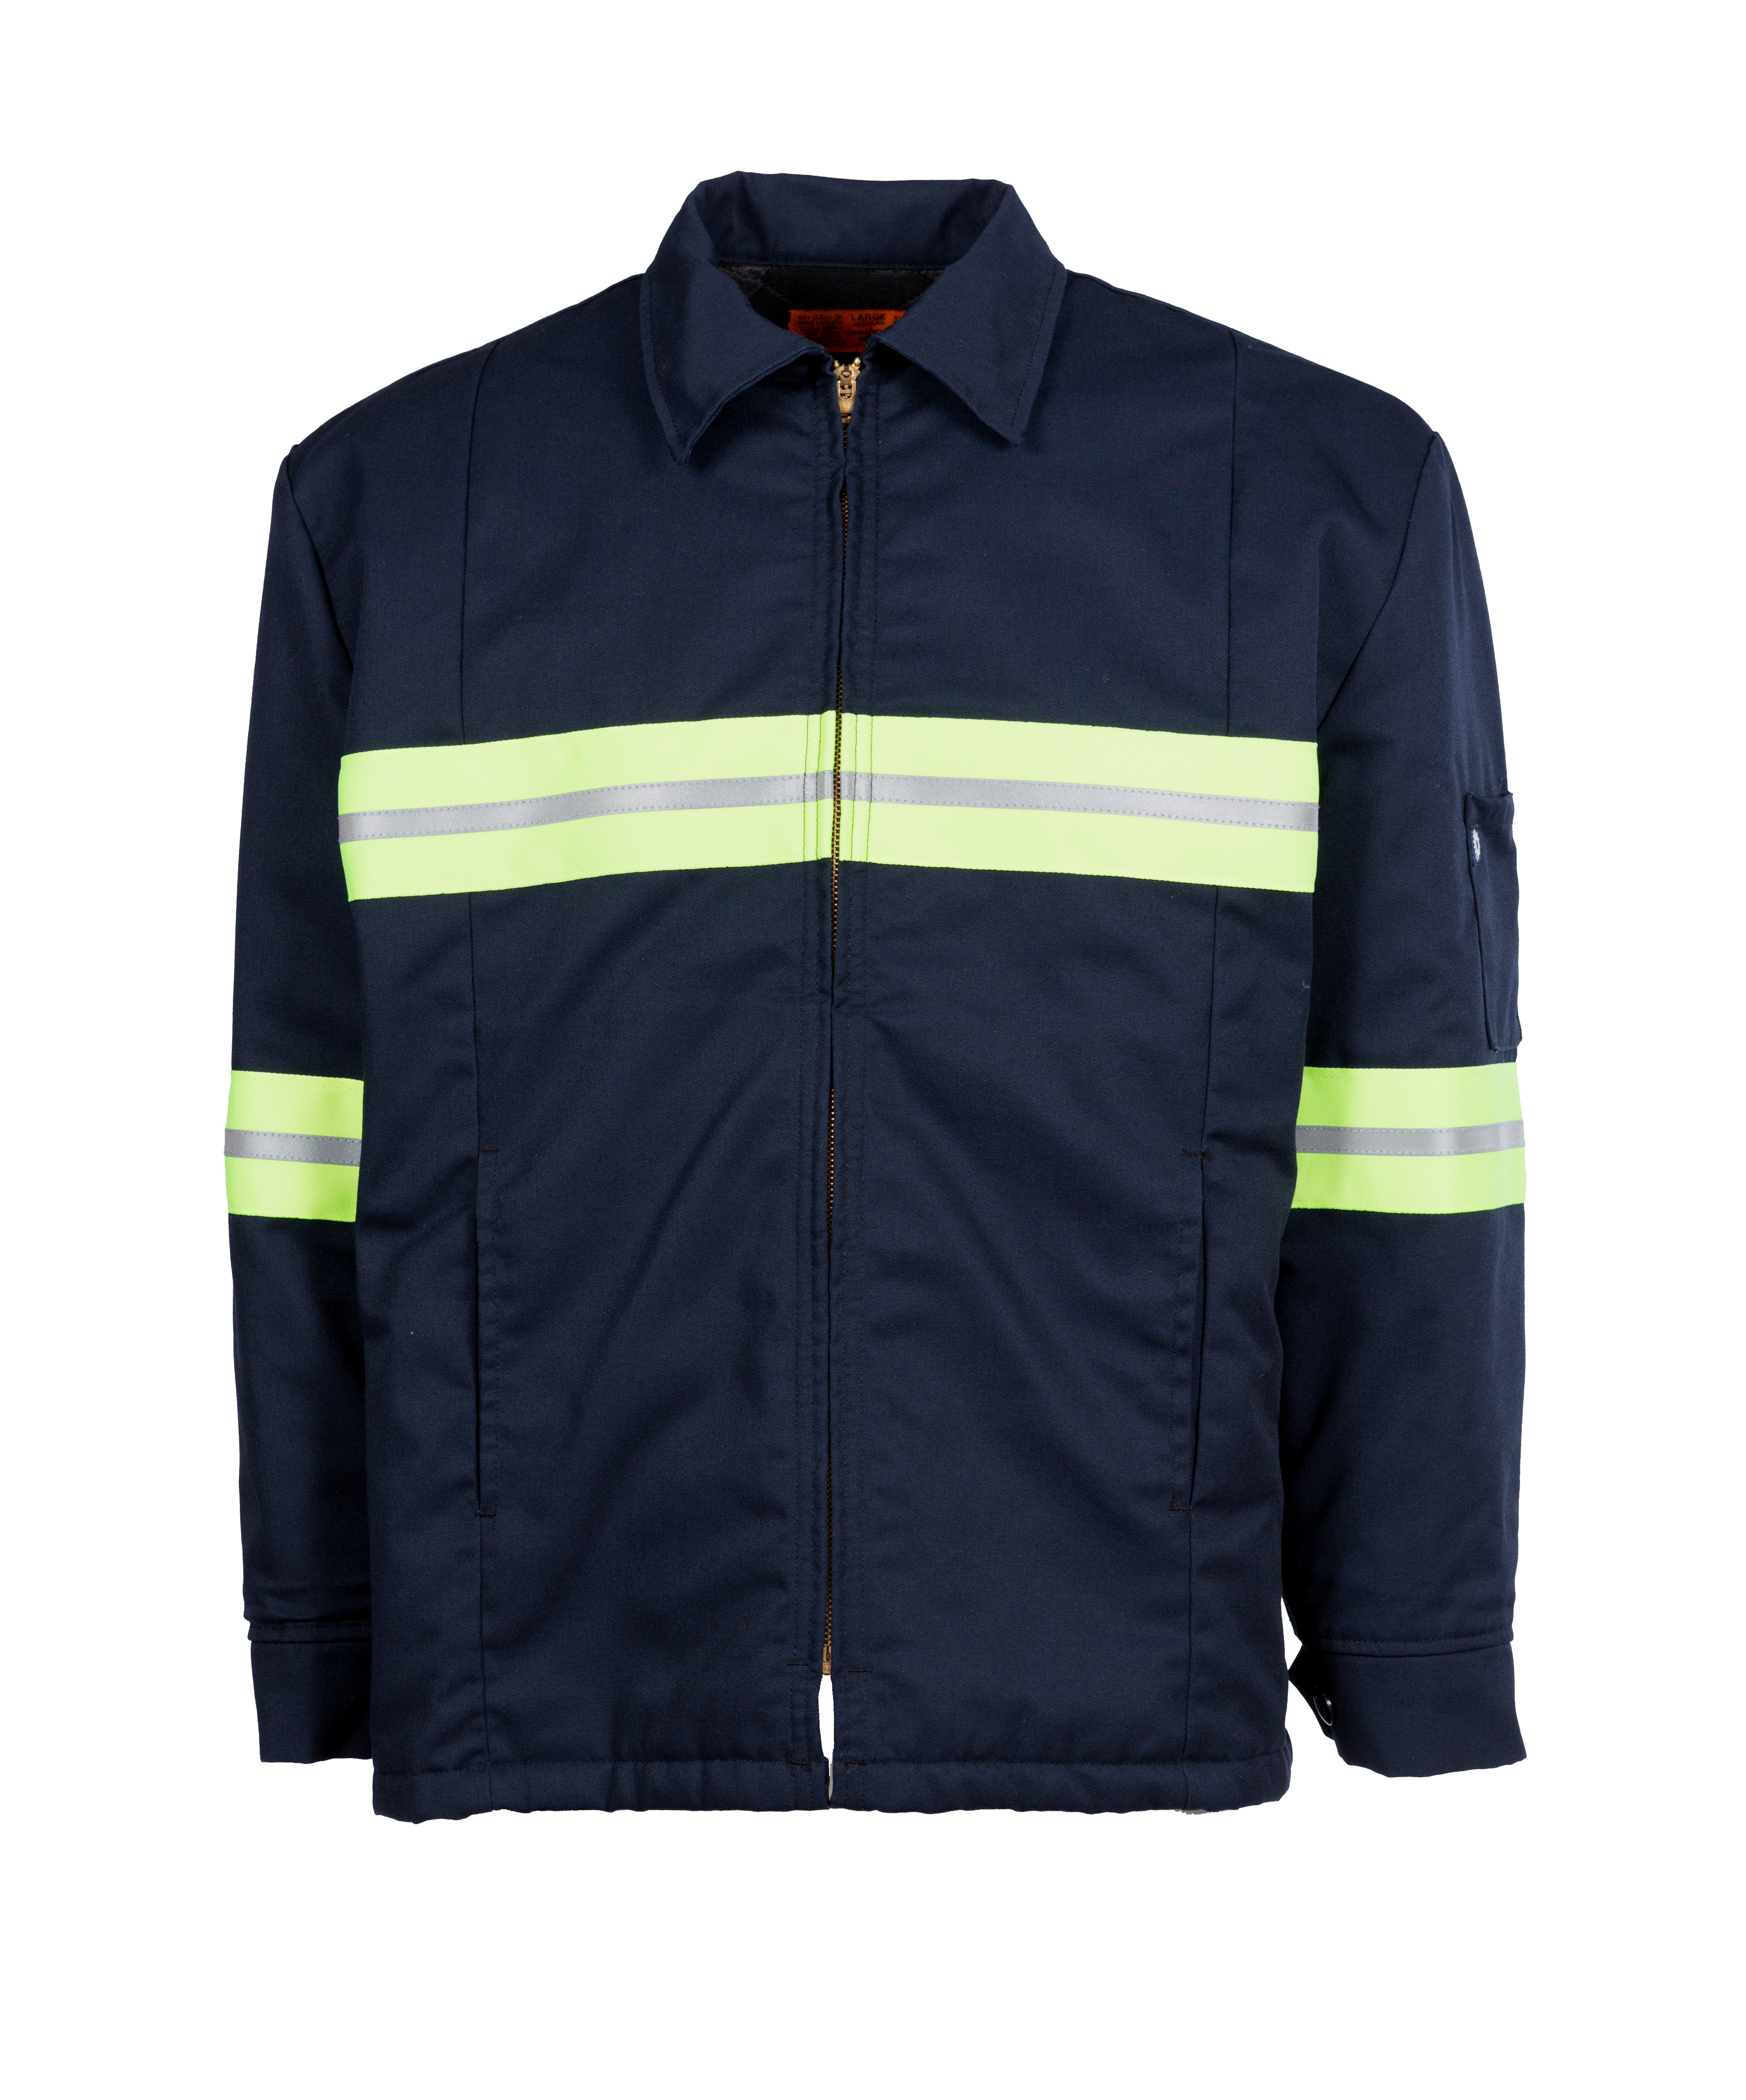 65/35 Enhanced Visibility Men's Lined Panel Jacket-Pinnacle WorX